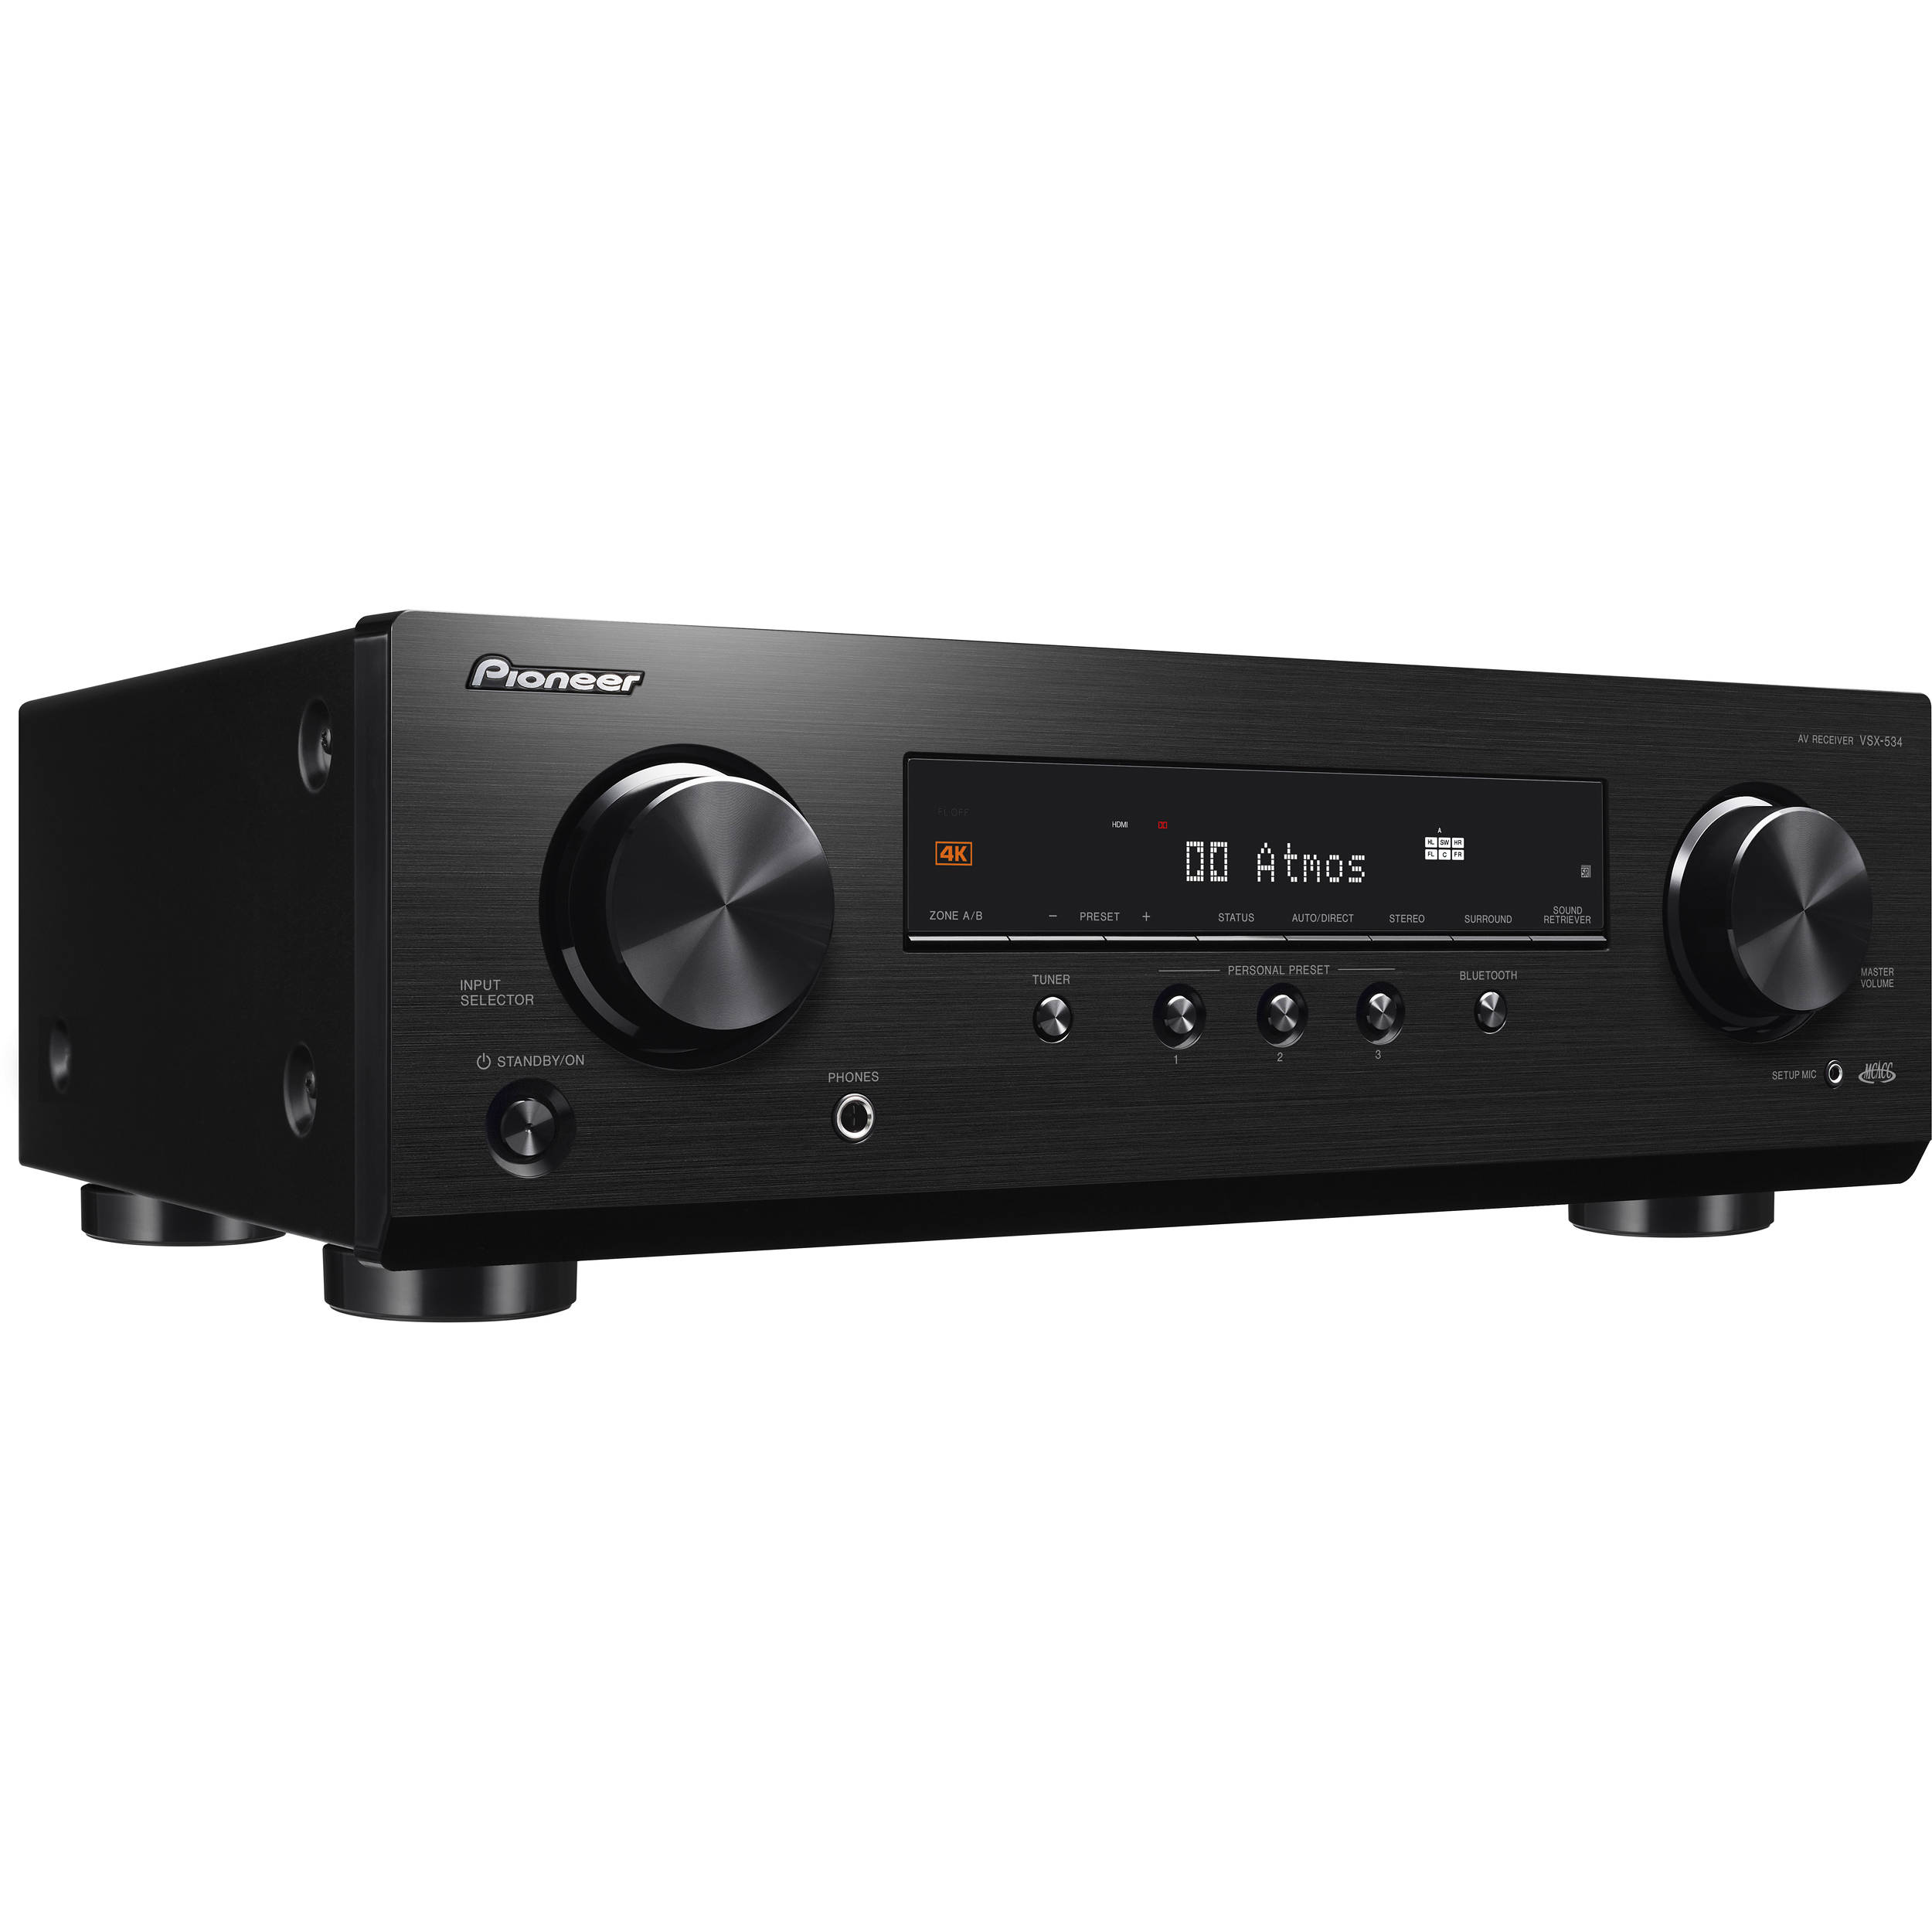 Pioneer VSX-534 5 2-Channel A/V Receiver